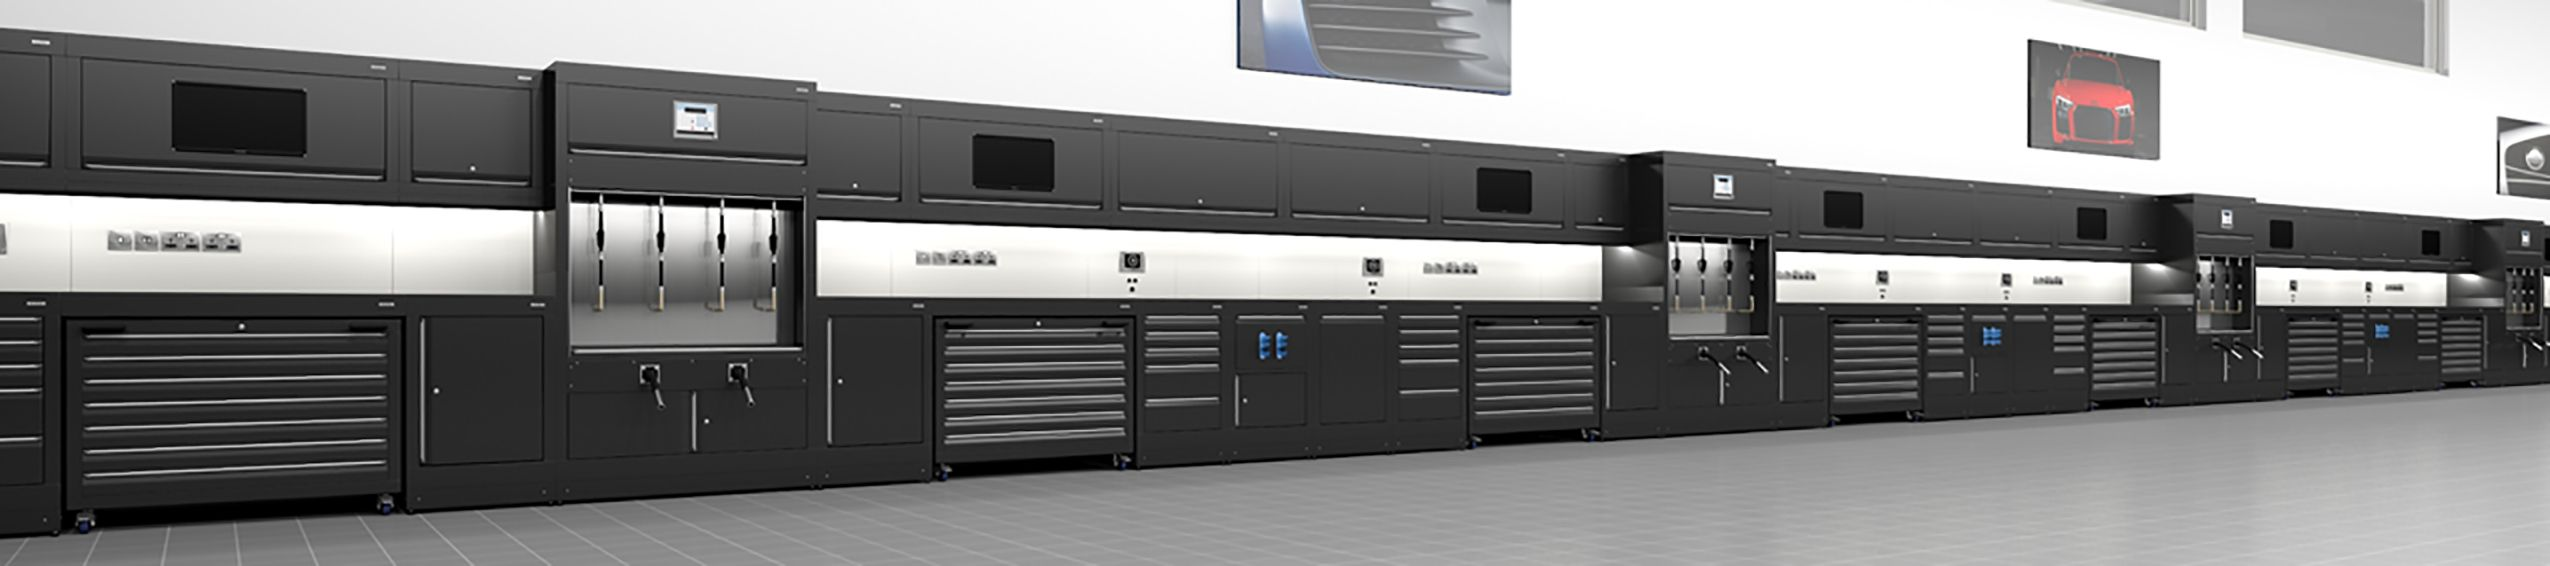 3D render of black cabinets by Dura Ltd